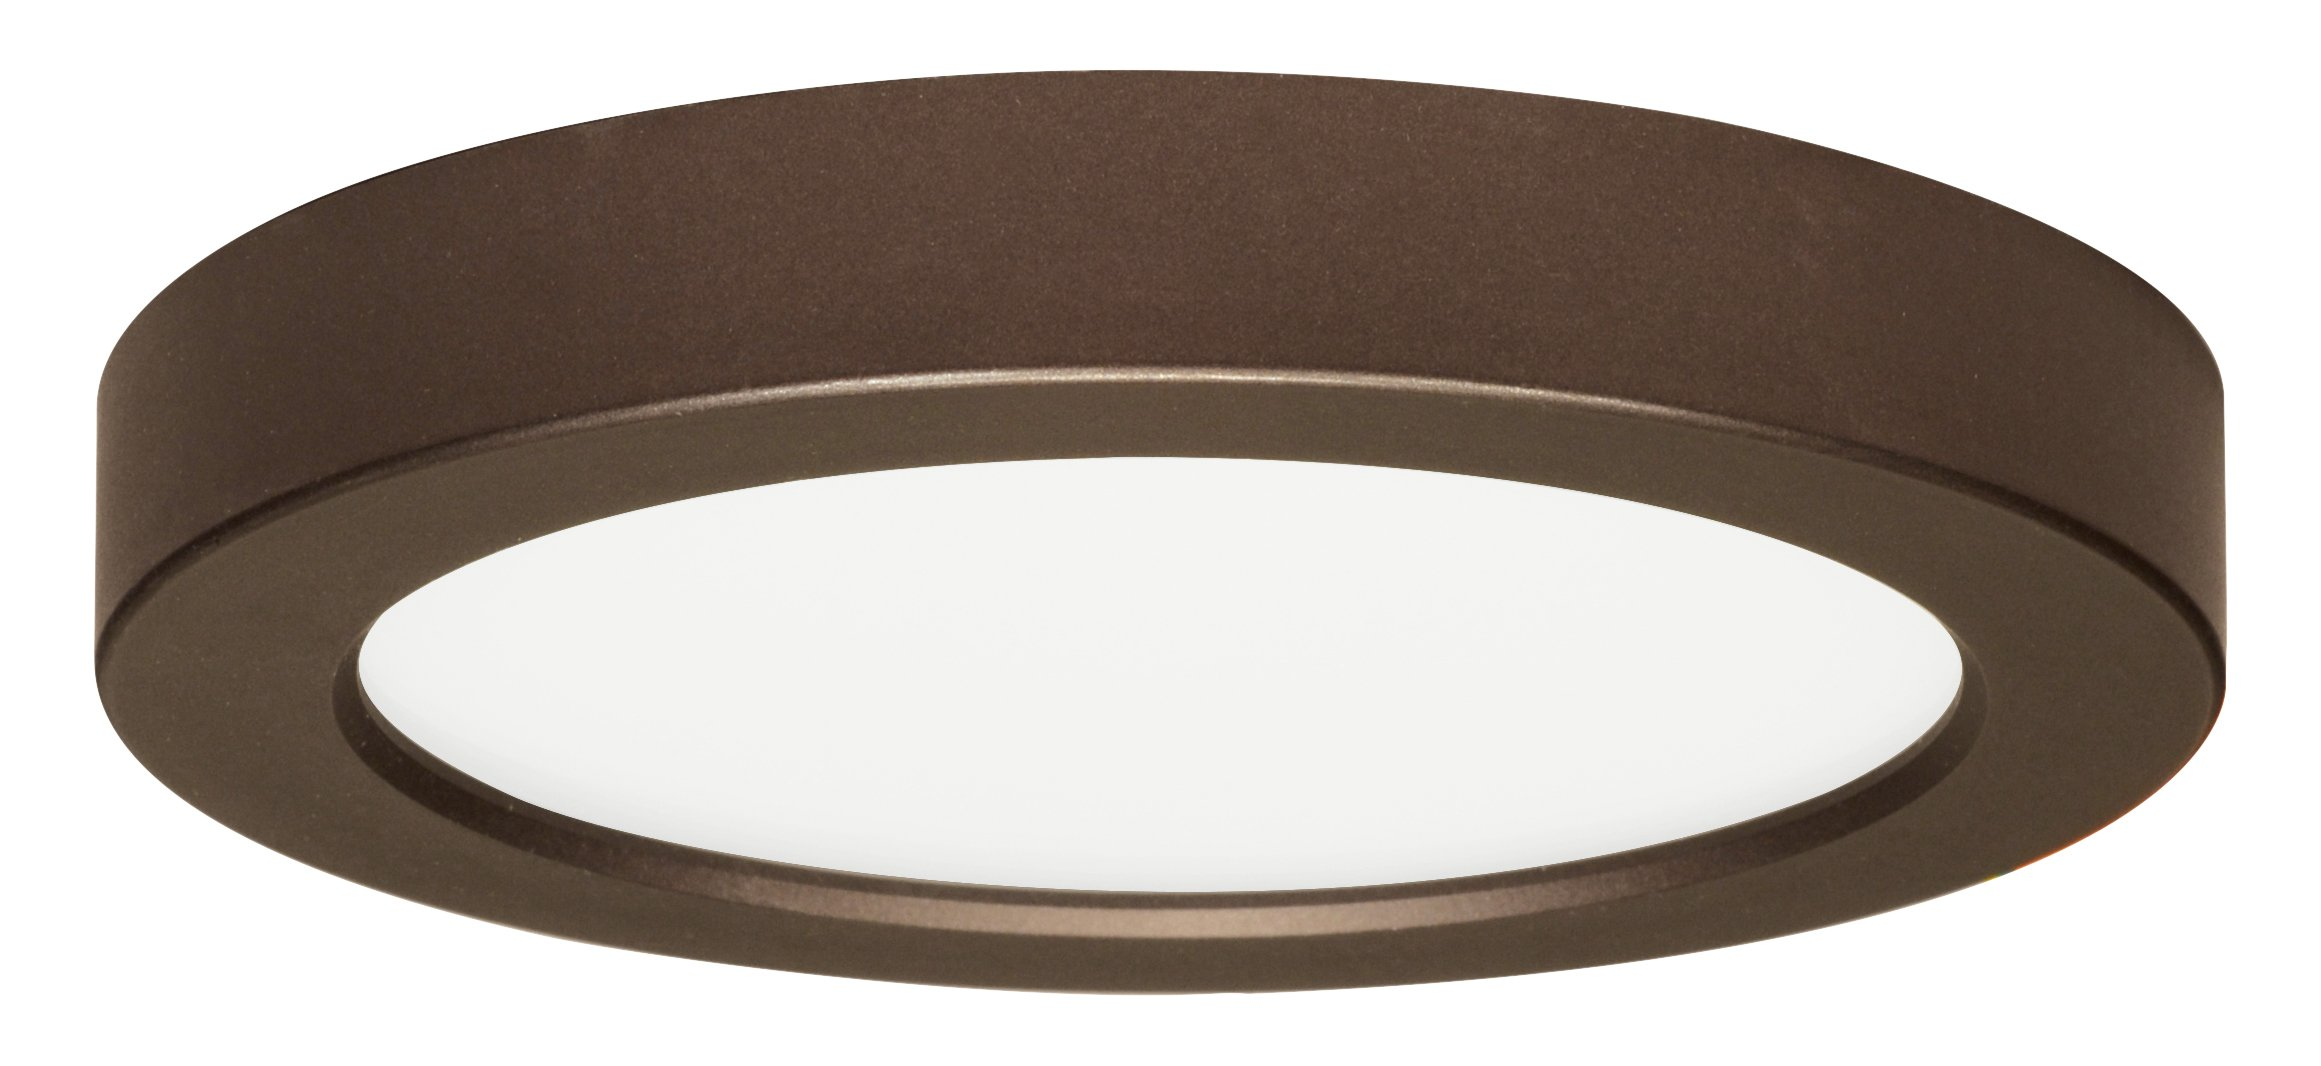 Satco Products S9330 120 volts Round Blink Flush Mount LED Fixture, 13.5W/7'', Bronze finish